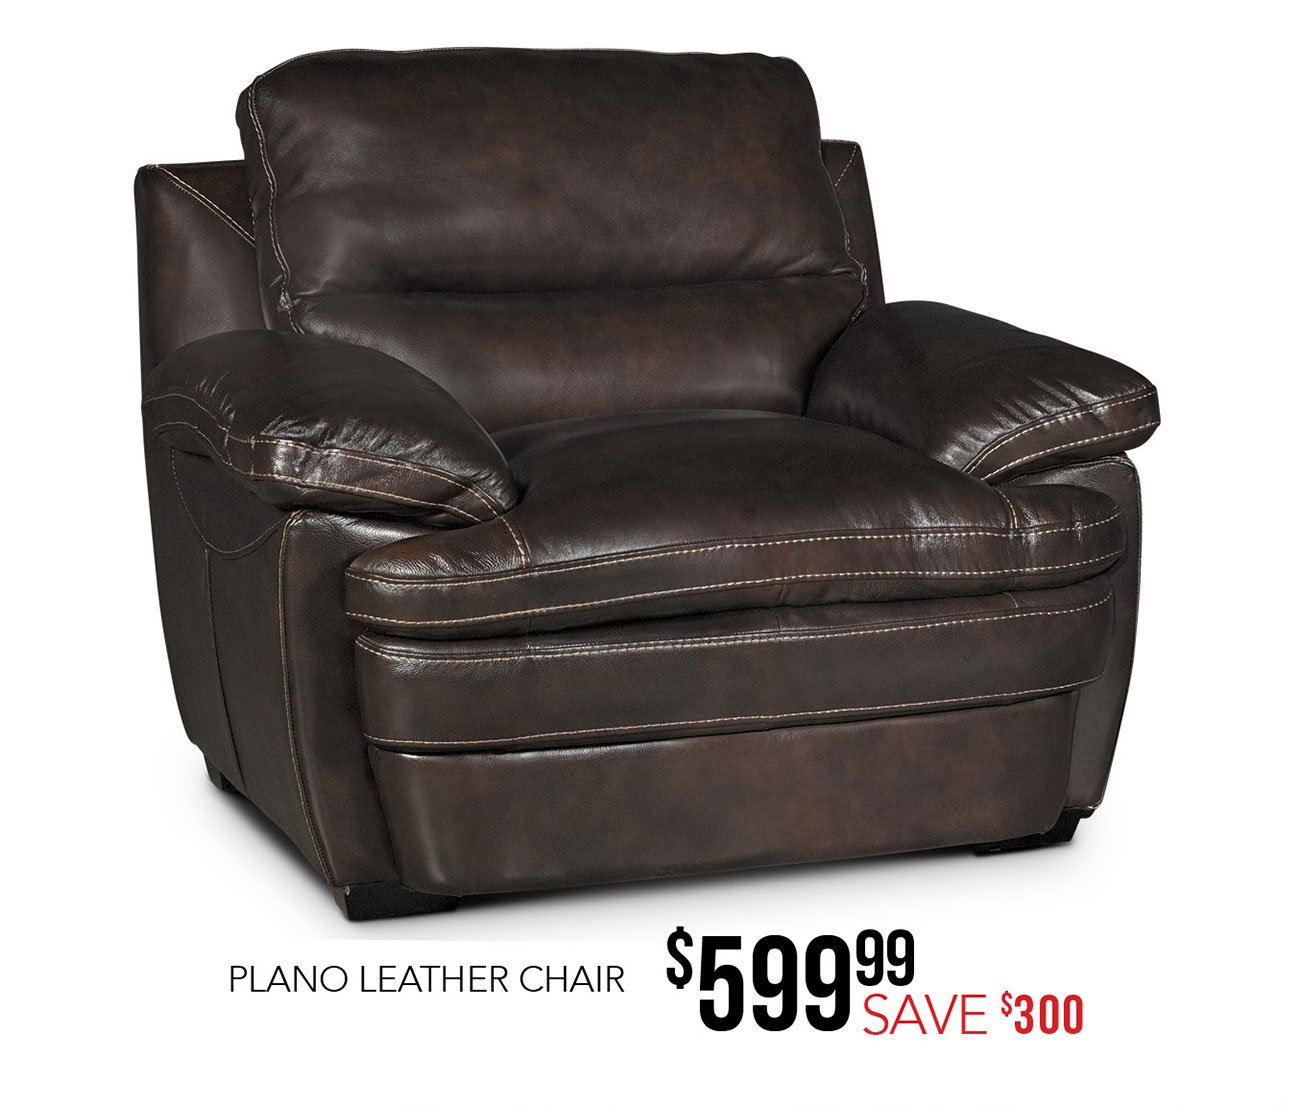 Plano-leather-chair